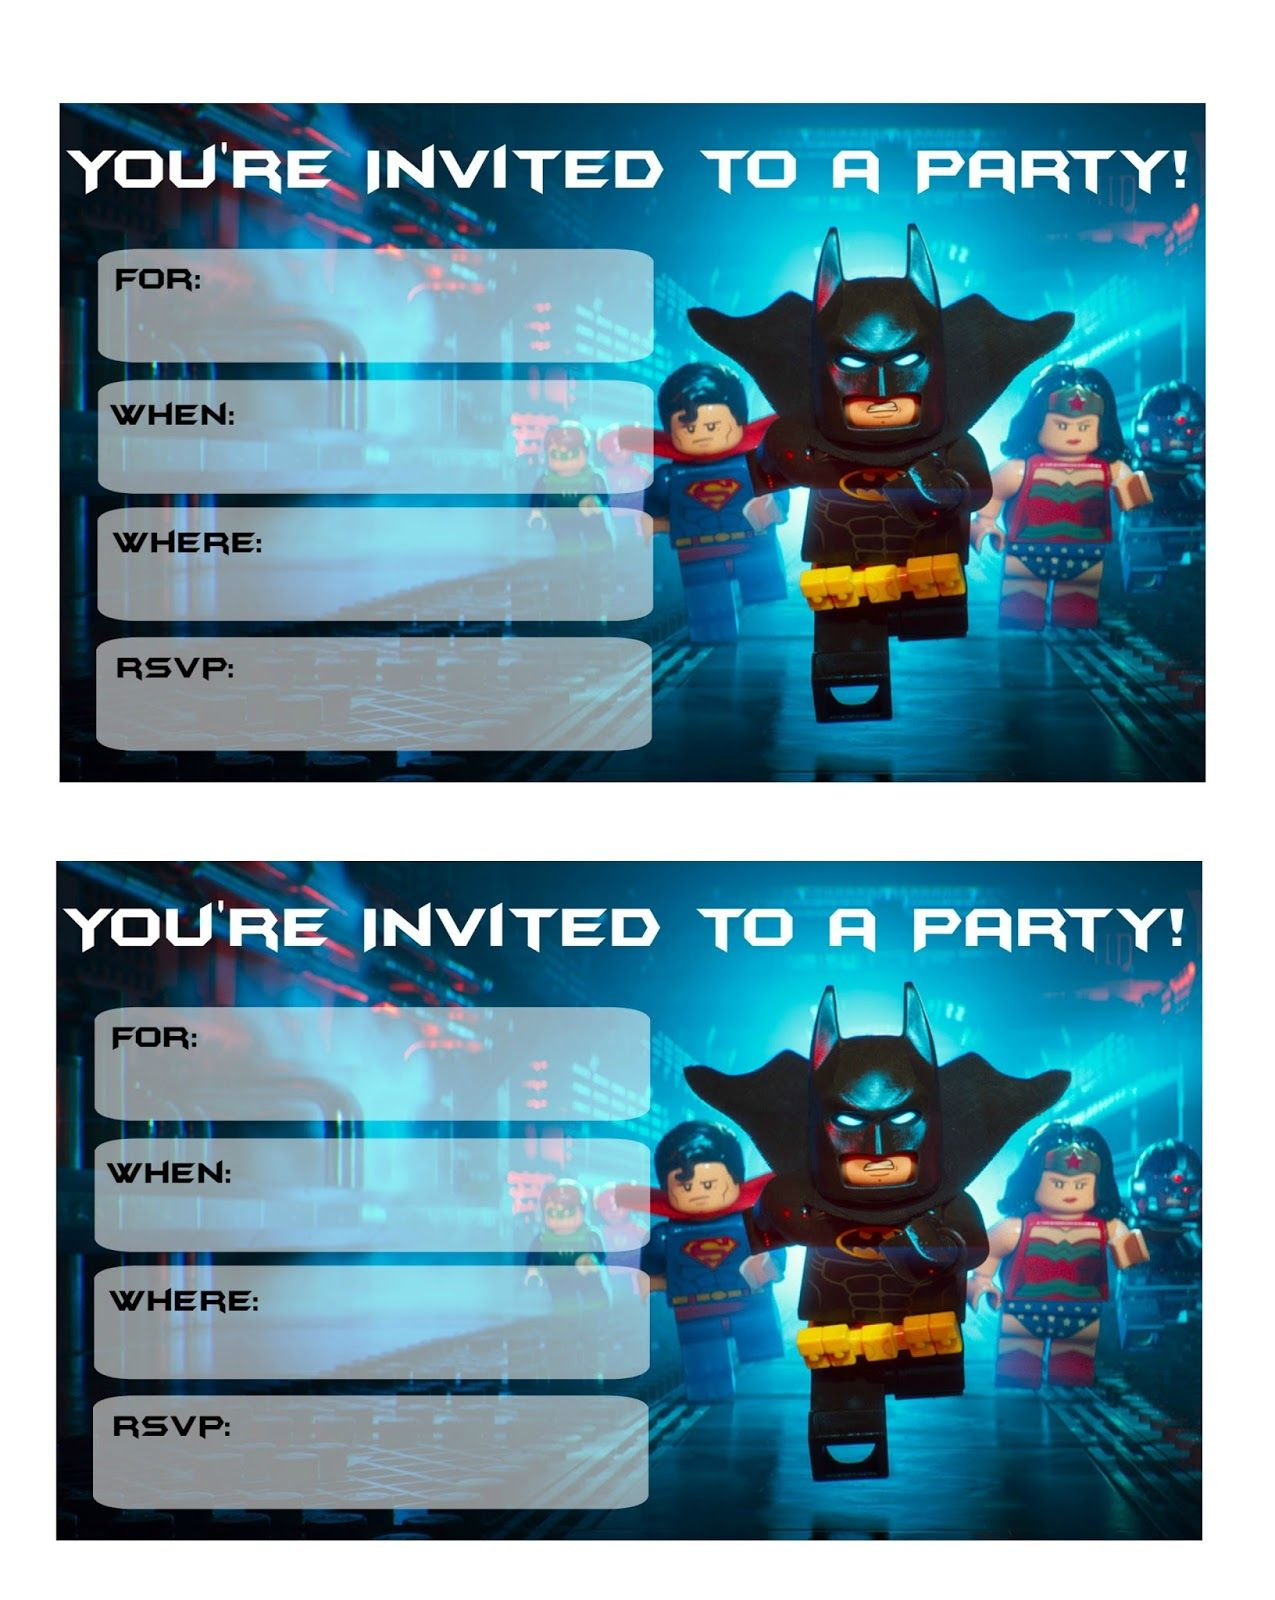 More Lego Batman Party Invitations | Lego batman and Superhero party